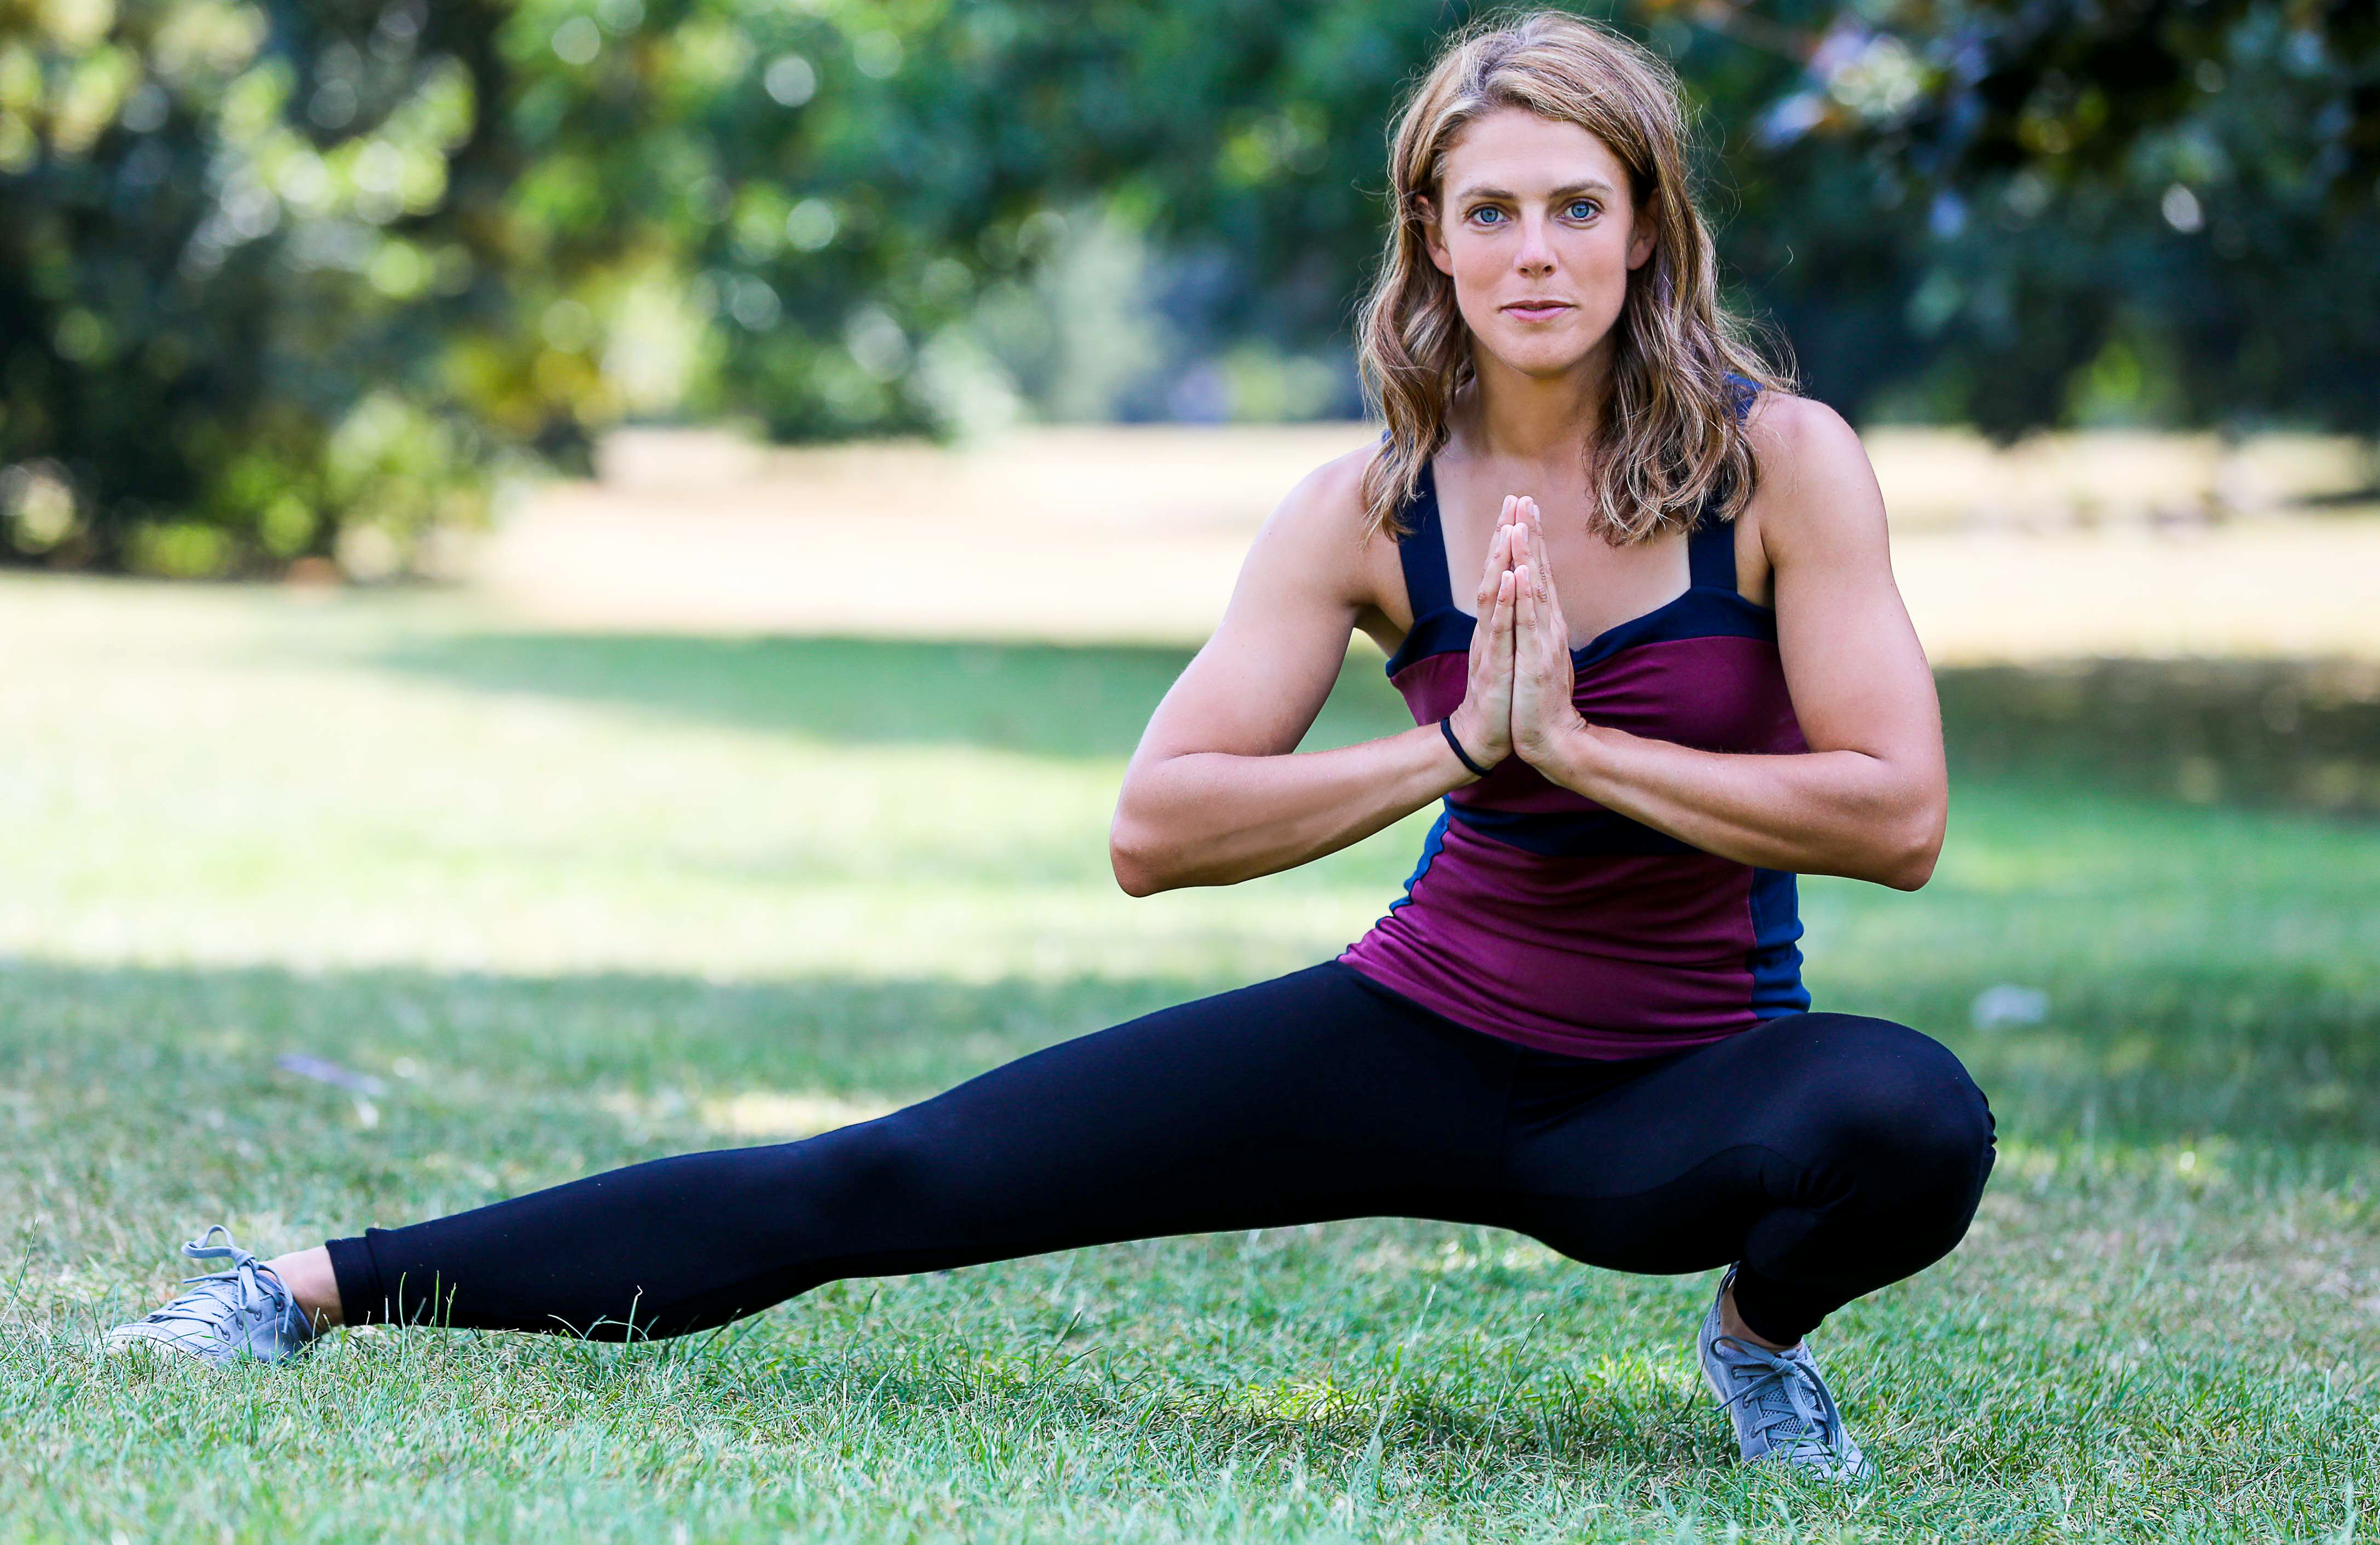 Megan Hine wearing Asquith bamboo yoga clothes in Hyde Park.